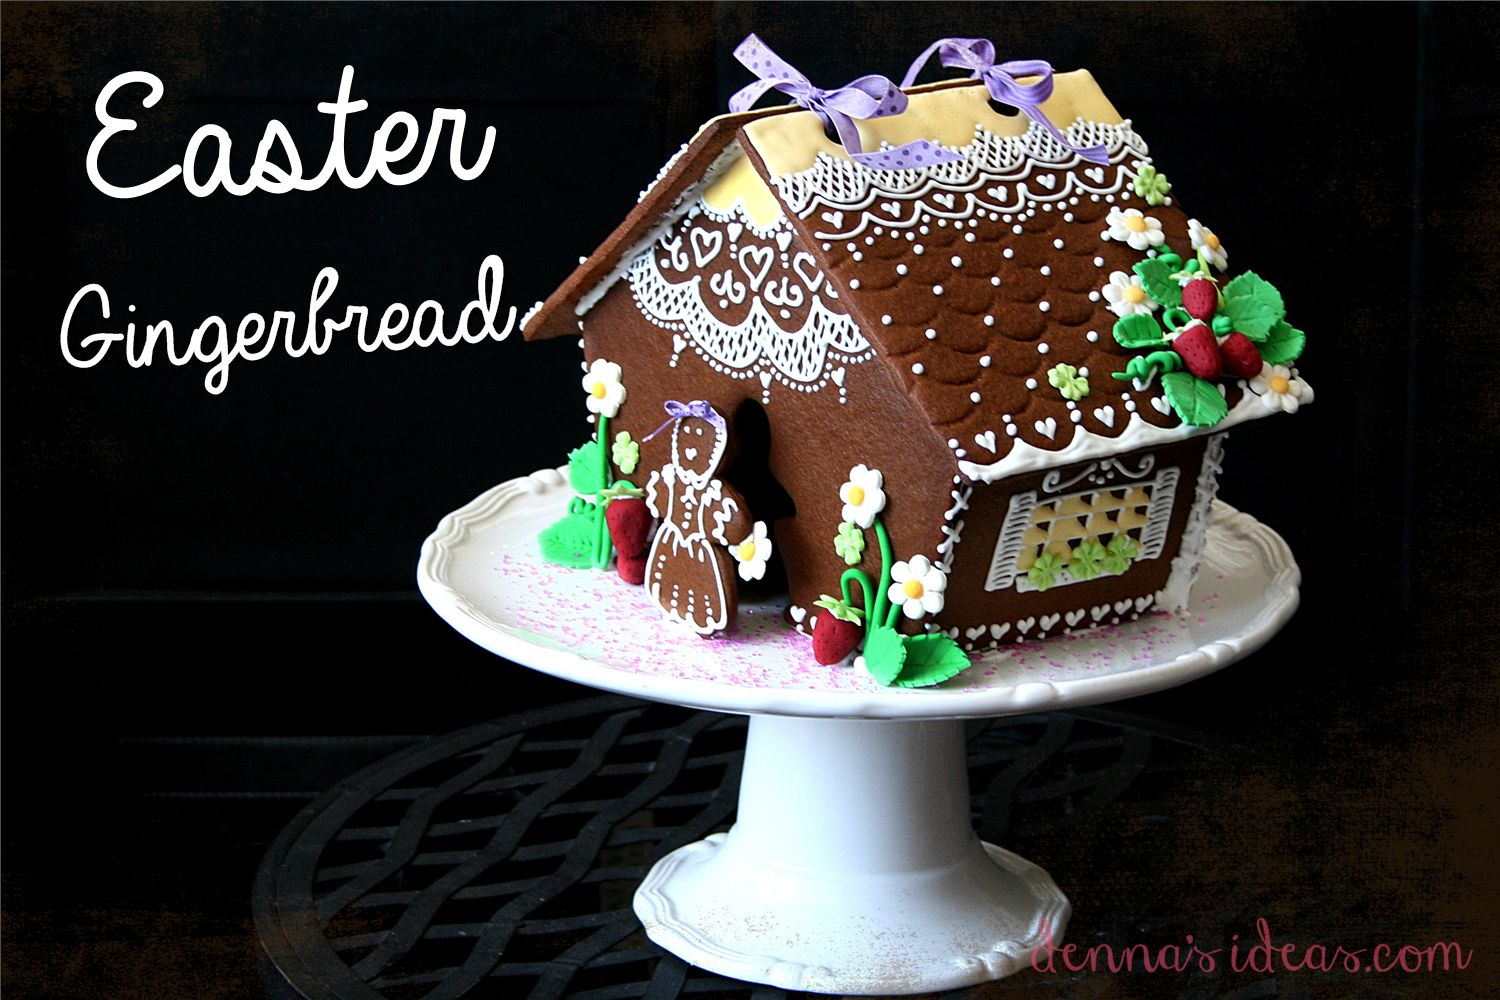 A Gingerbread House for Spring